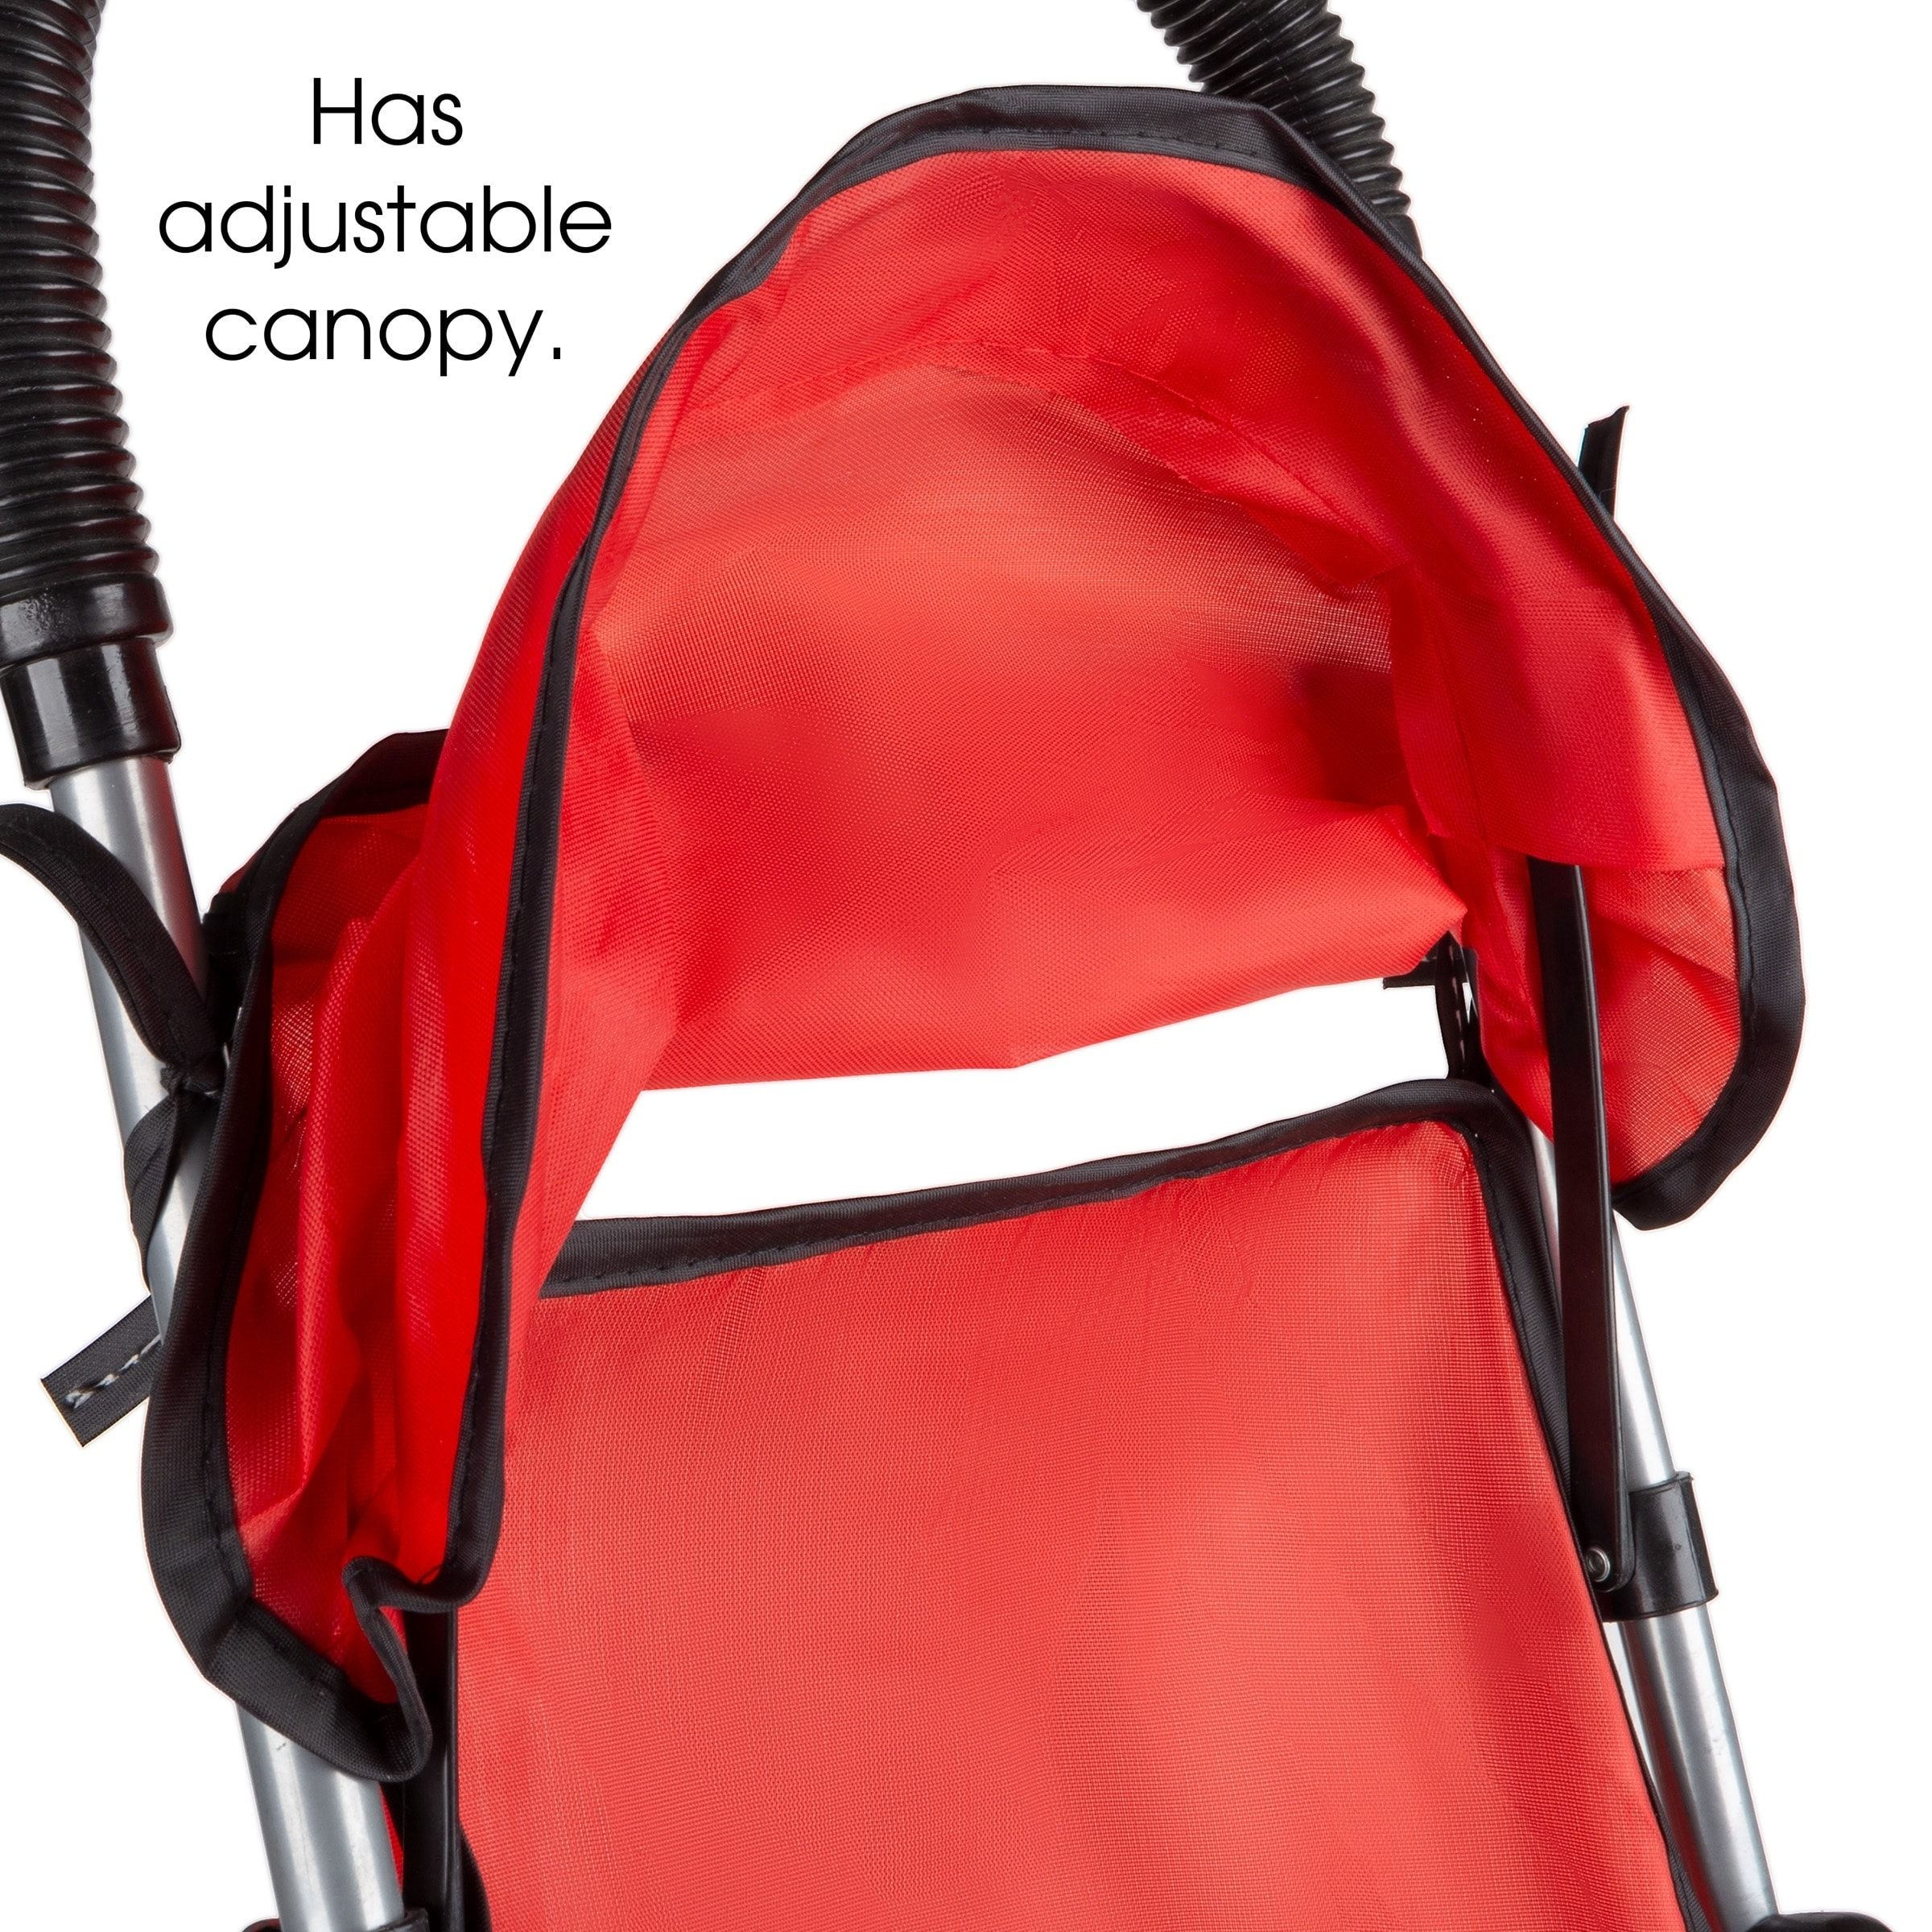 """661650CYK Play Kids and Toddlers Lightweight Umbrella Stroller with Rear Basket and Canopy for Girls 661650CYK 661650CYK 661650CYK Boys Toy Stroller for 10/"""" Baby Dolls- Foldable Hey Red"""